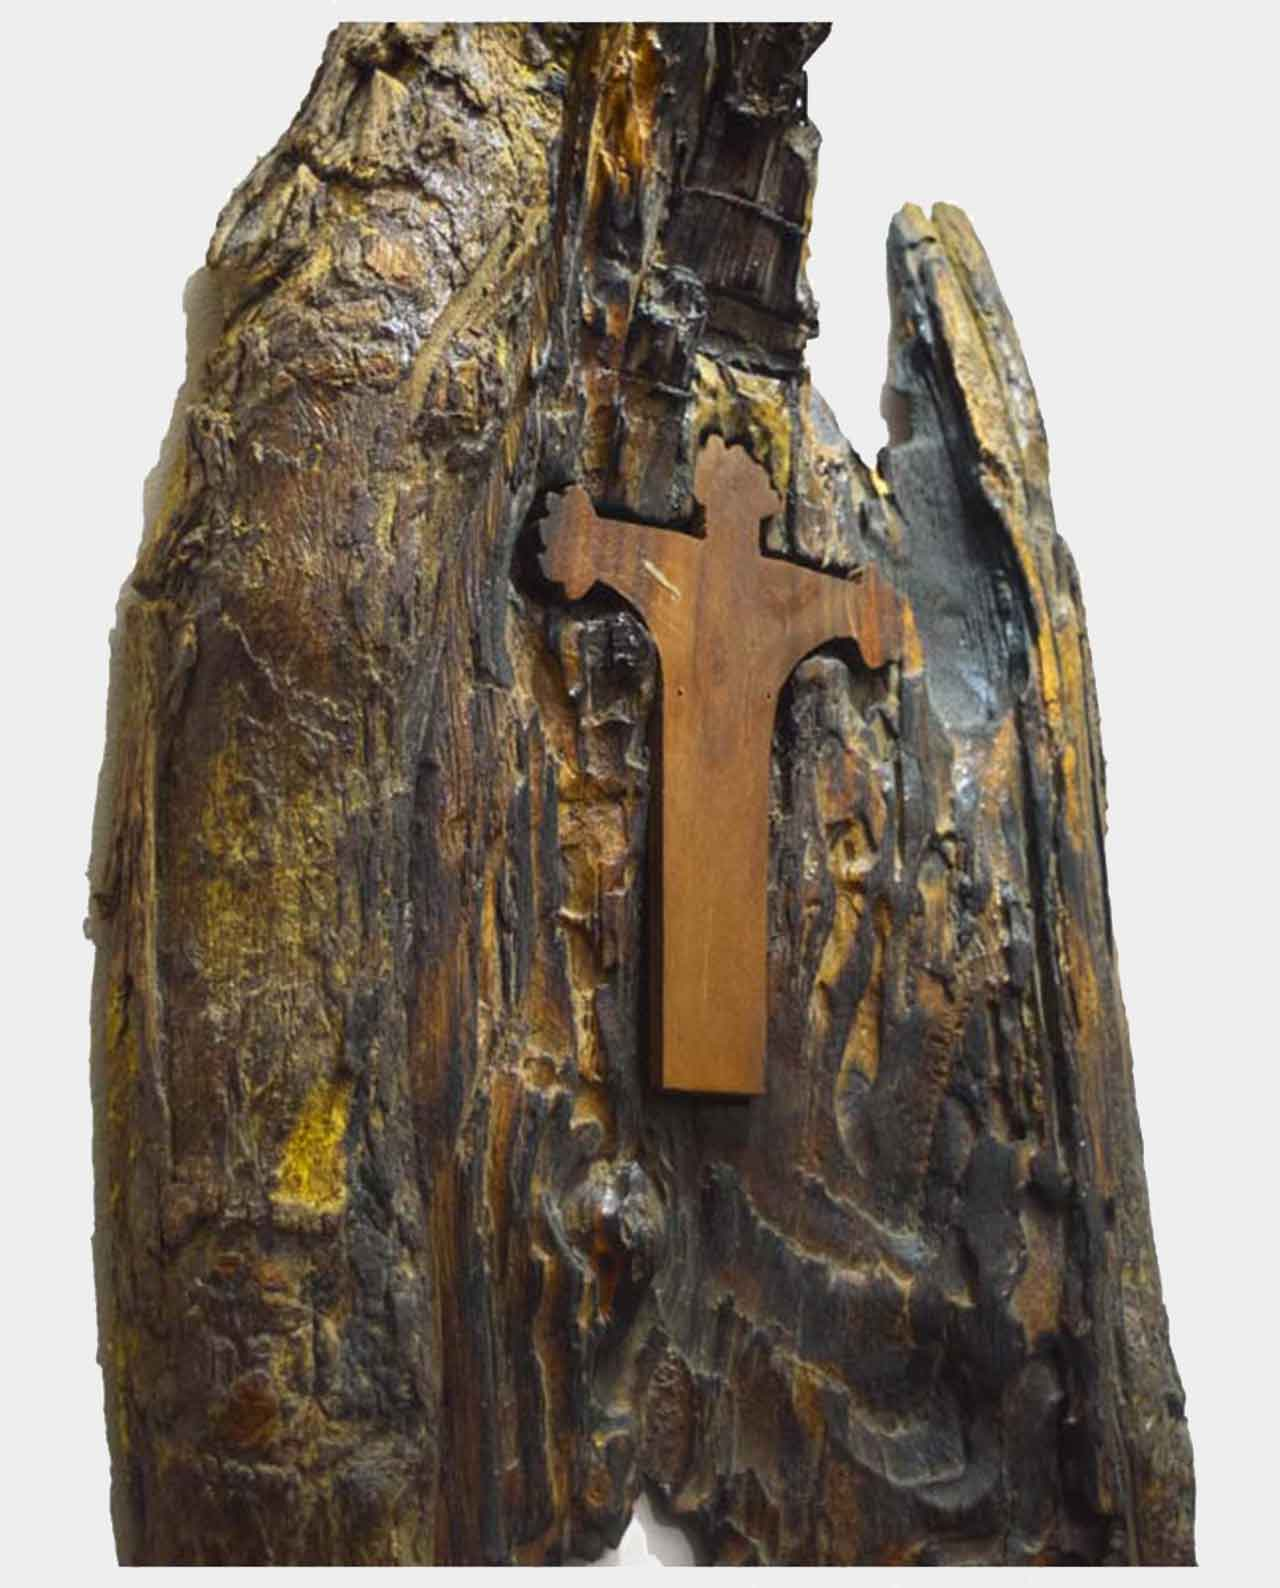 Christ's cross in the form of a wing of the Virgin Handmade of Asersus wooden